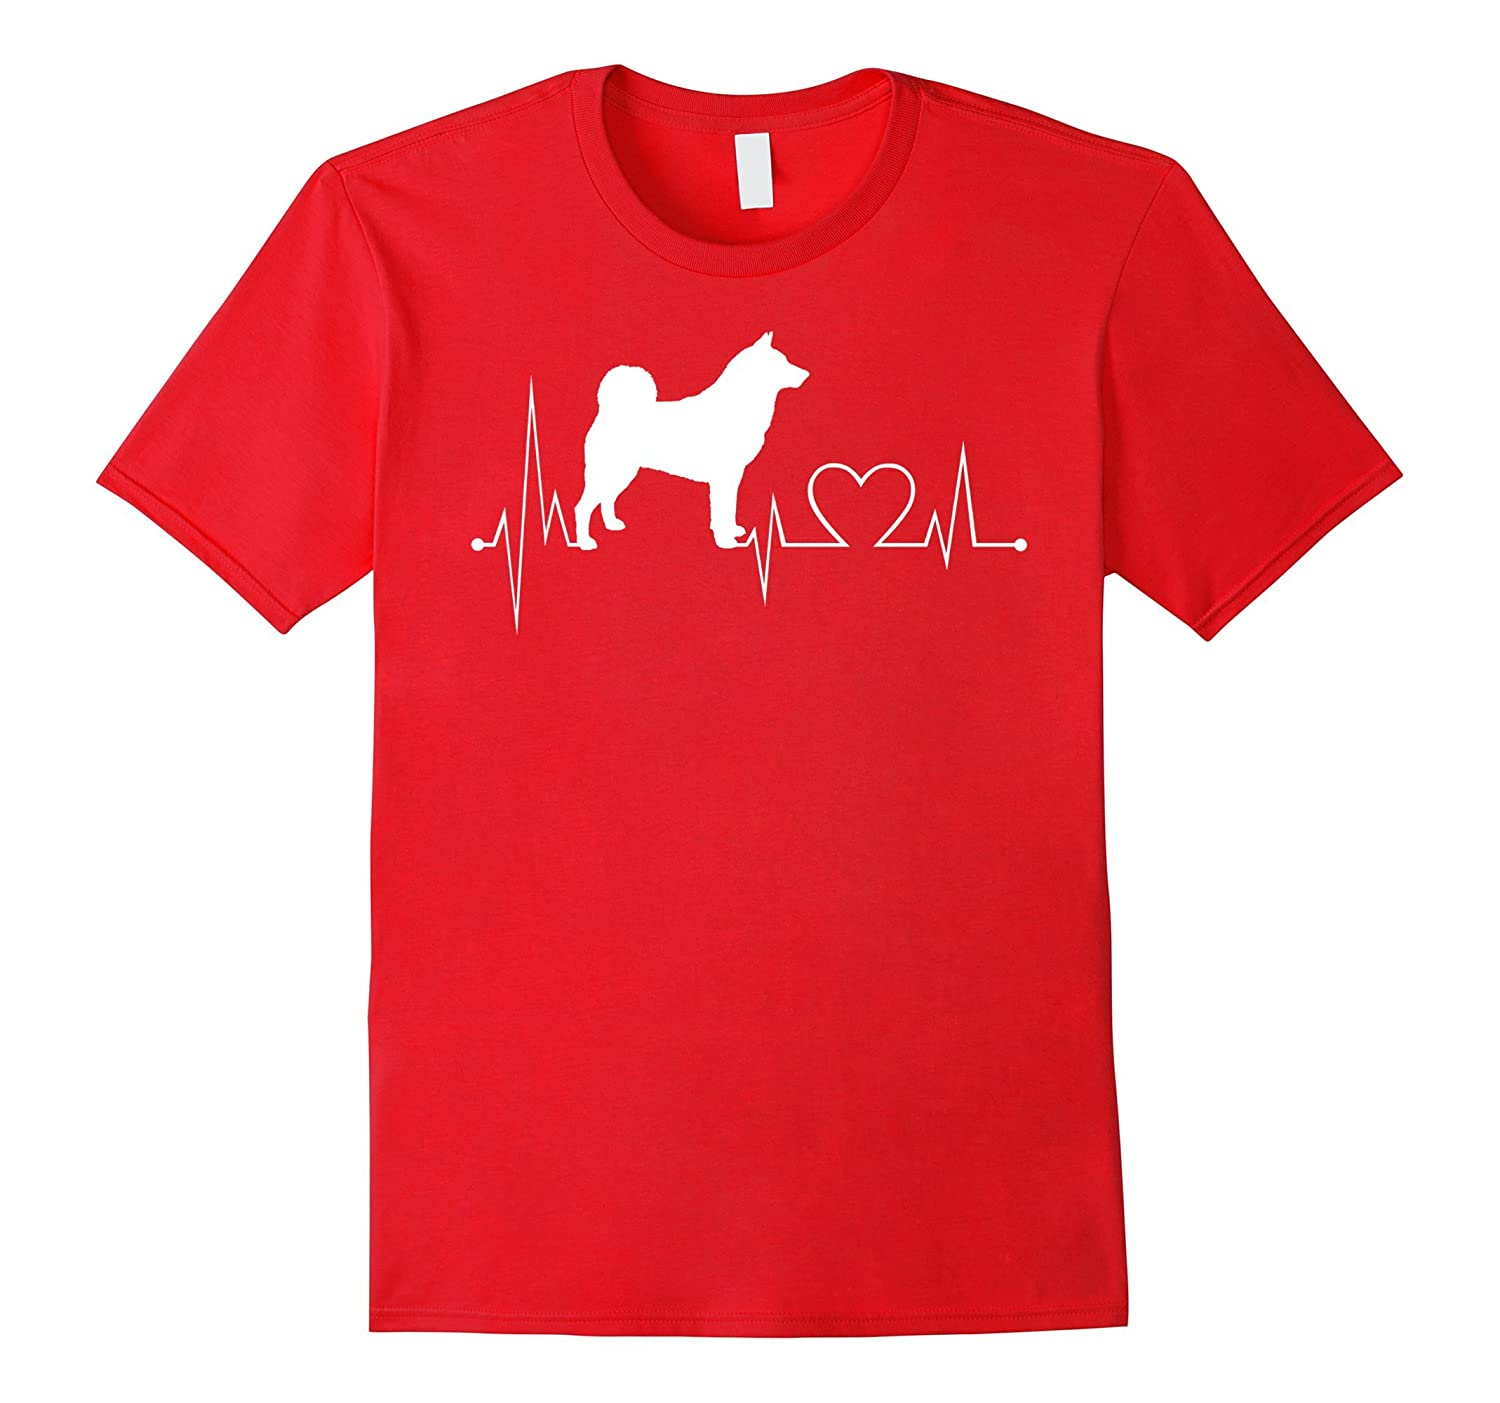 Elkhound-Norwegian-Grey heartbeat - Dog lovers gifts tshirt-Vaci